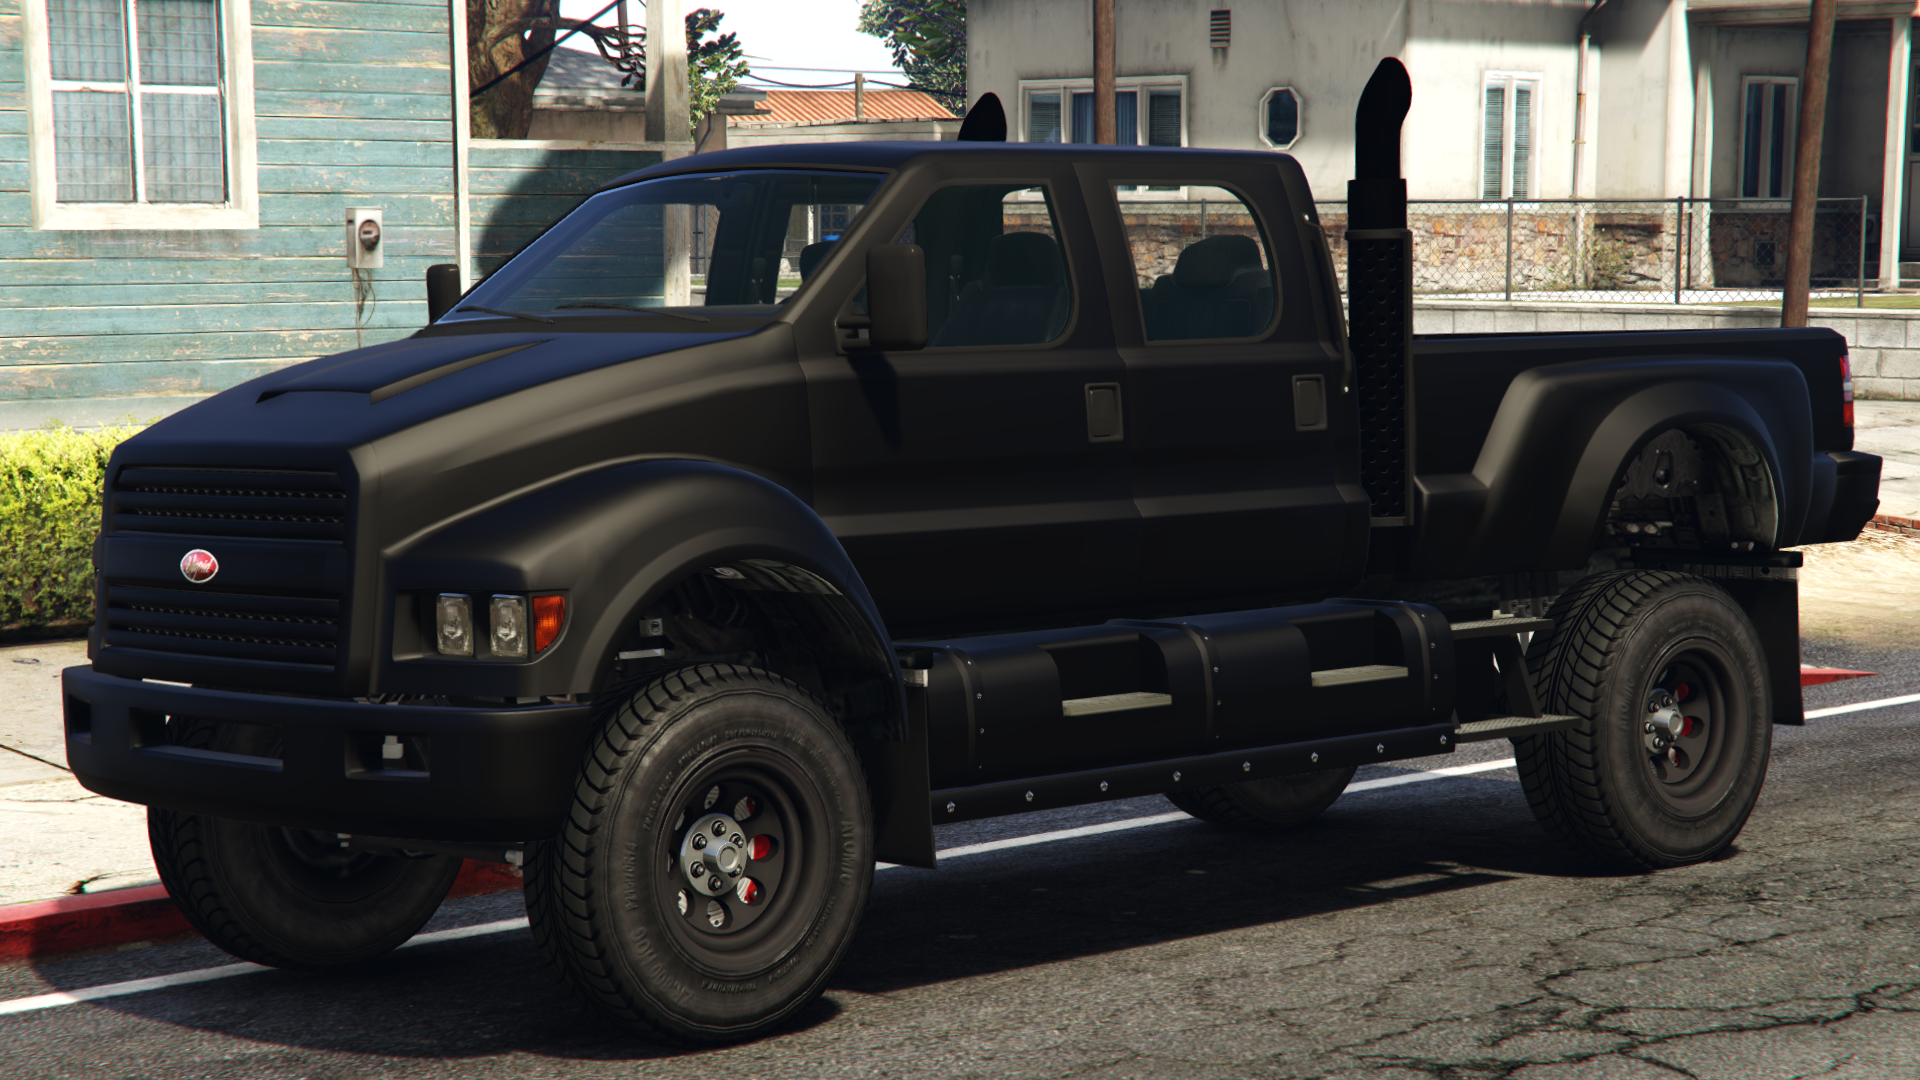 35690 Gta V Vapid Sandking Xl 4500 besides 43151 Gta V Vapid Sandking Xl Wheels V2 together with Lssd Bravado Bison moreover Watch likewise Guardian. on gta 5 vapid guardian